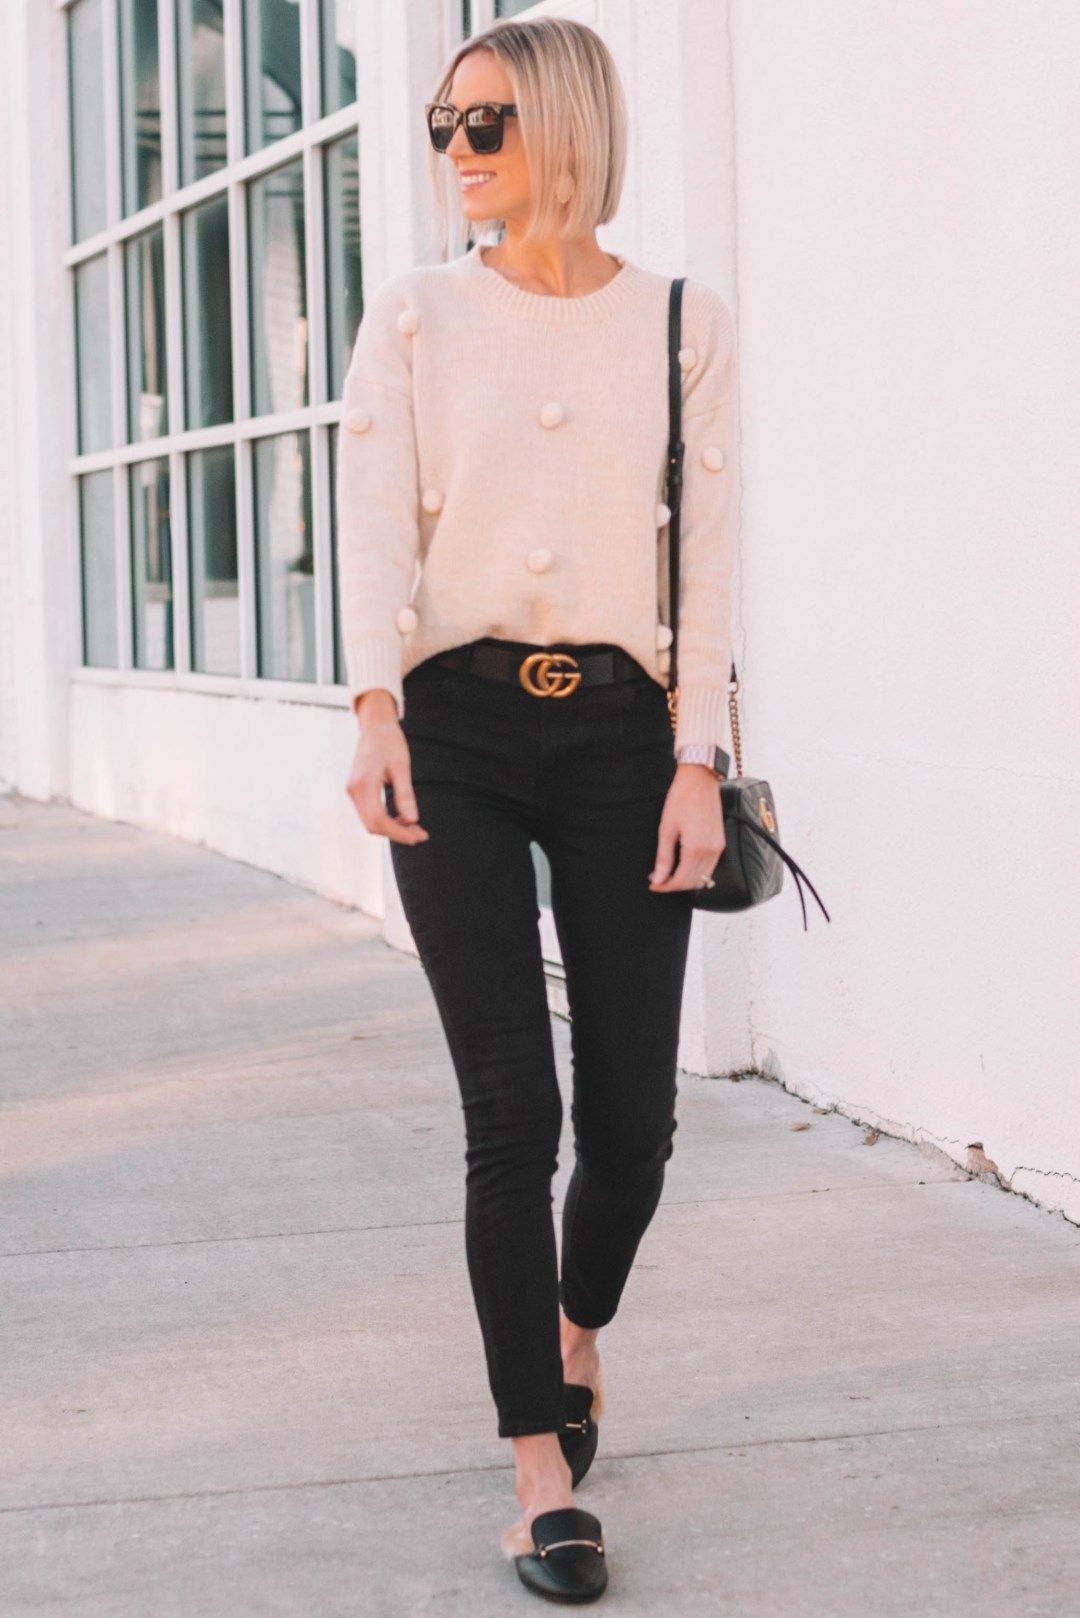 f03896a8aed casual outfit with great gucci dupe pieces, cream pom pom sweater, black  jeans, Gucci dupe slides under $25, Gucci dupe belt #pompom #sweater # casualoutfit ...